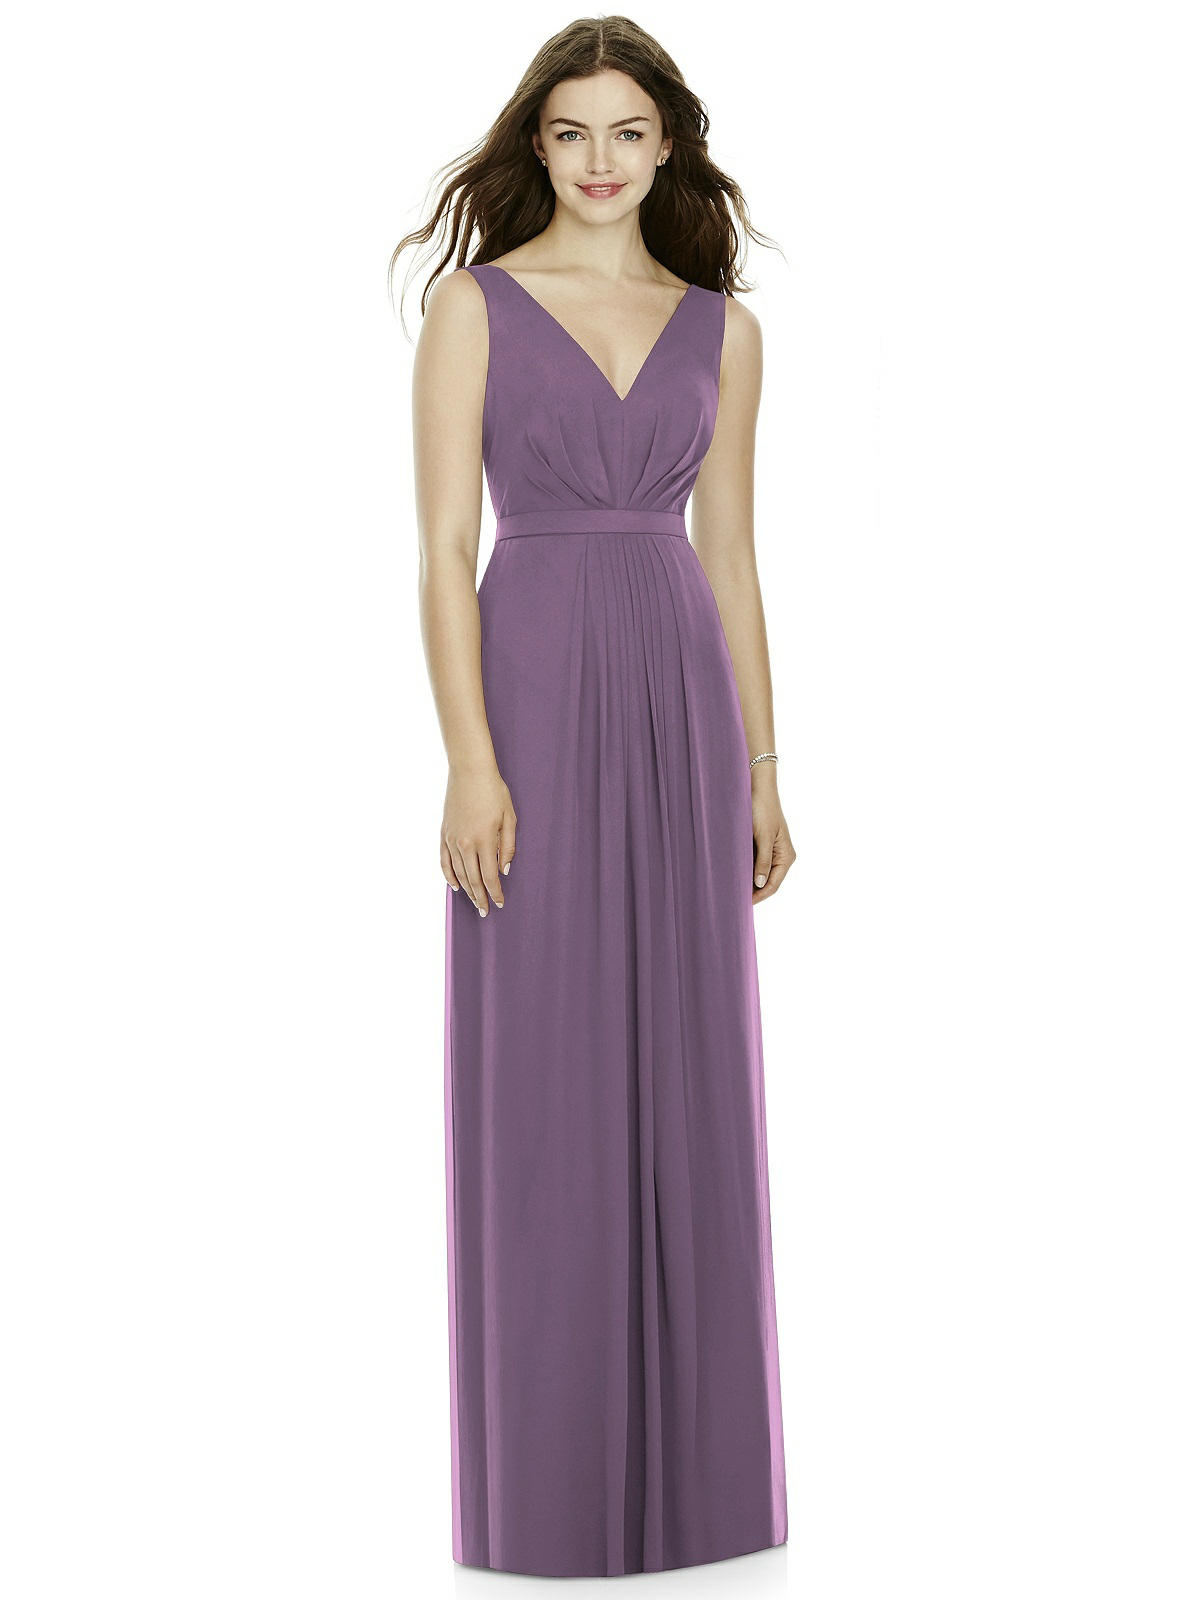 Bb103 bella bridesmaids shop dresses share on facebook tweet this dress pin it ombrellifo Image collections